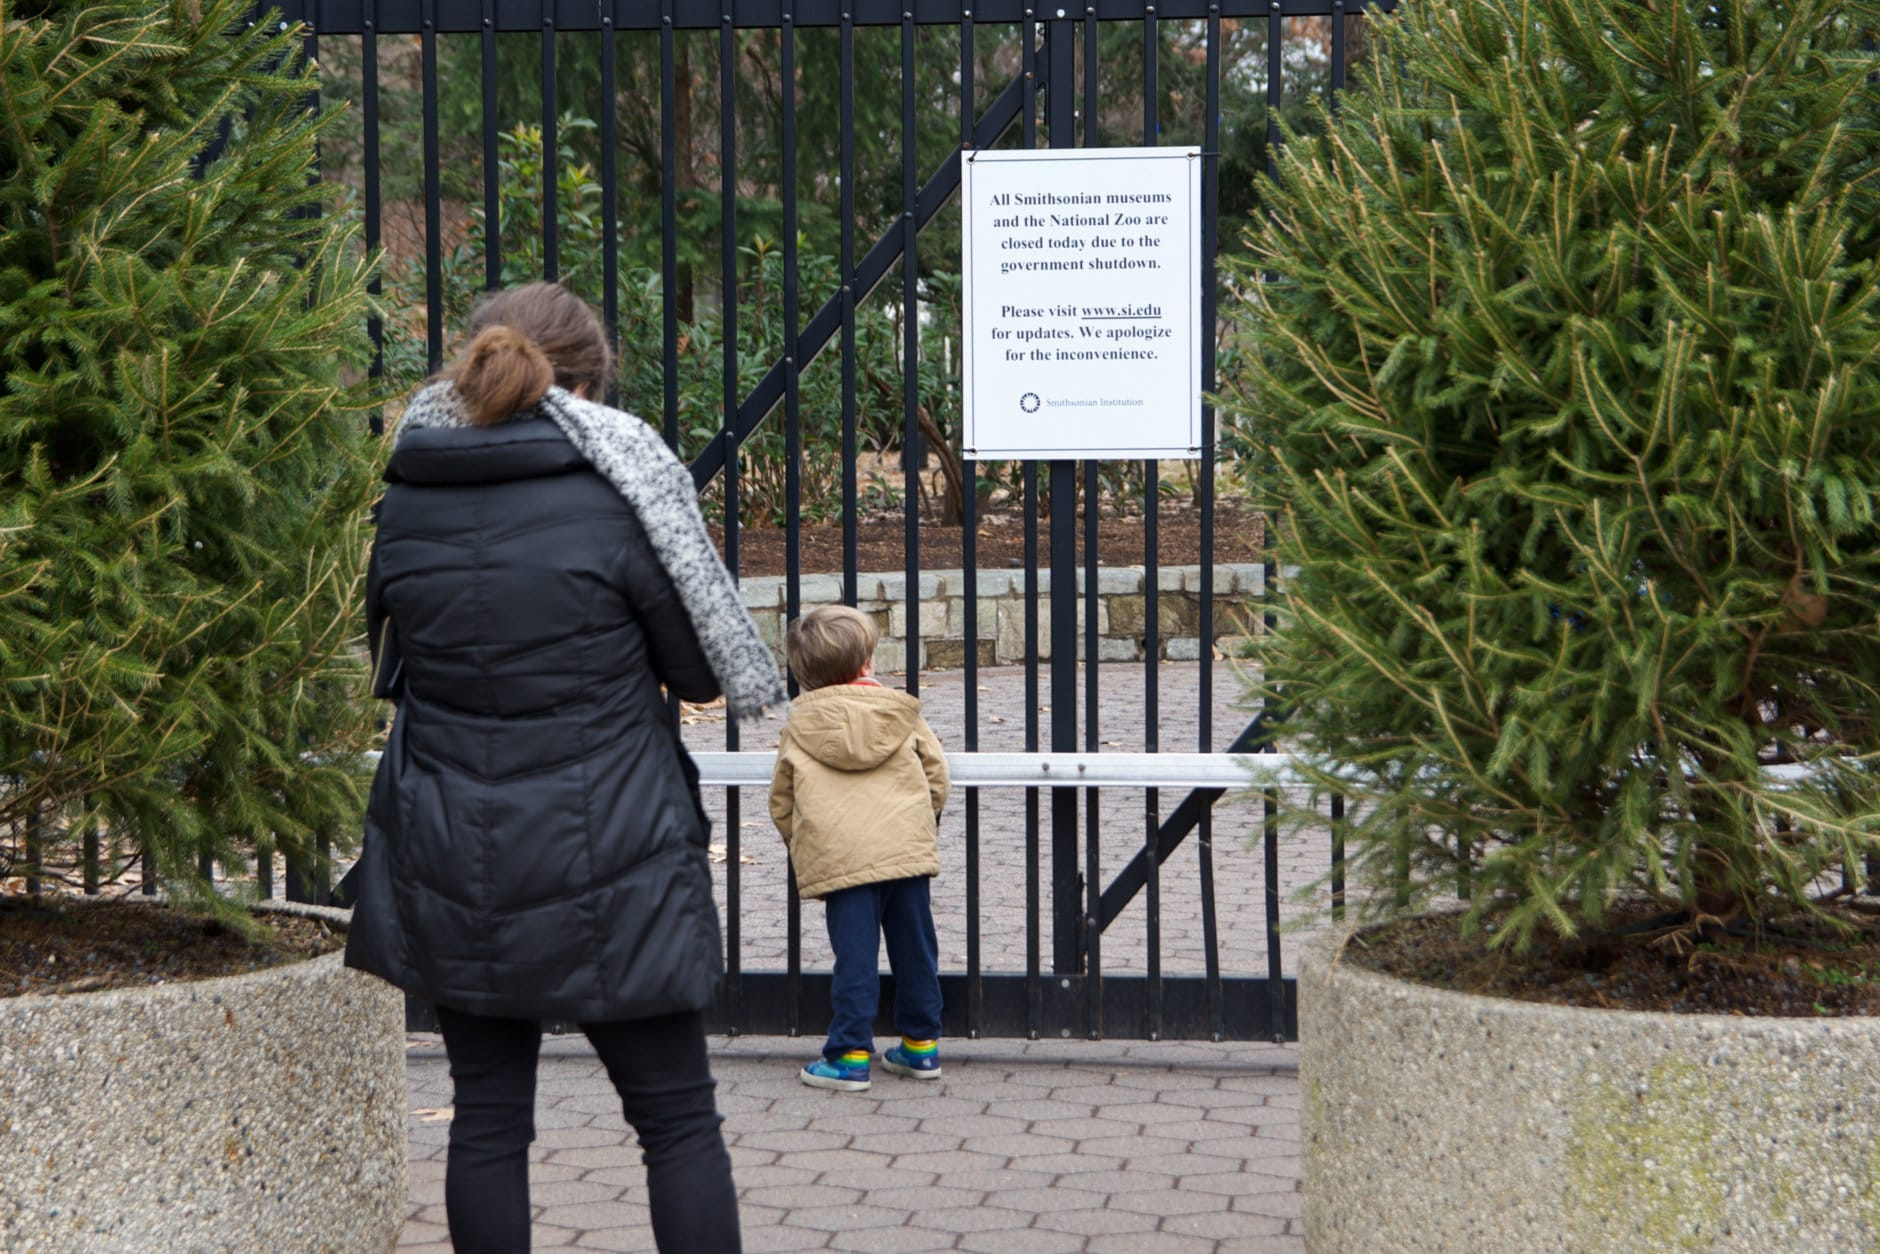 A family tries to visit the National Zoo during the government shutdown Wednesday, Jan. 2, 2019. (WTOP/Alejandro Alvarez)